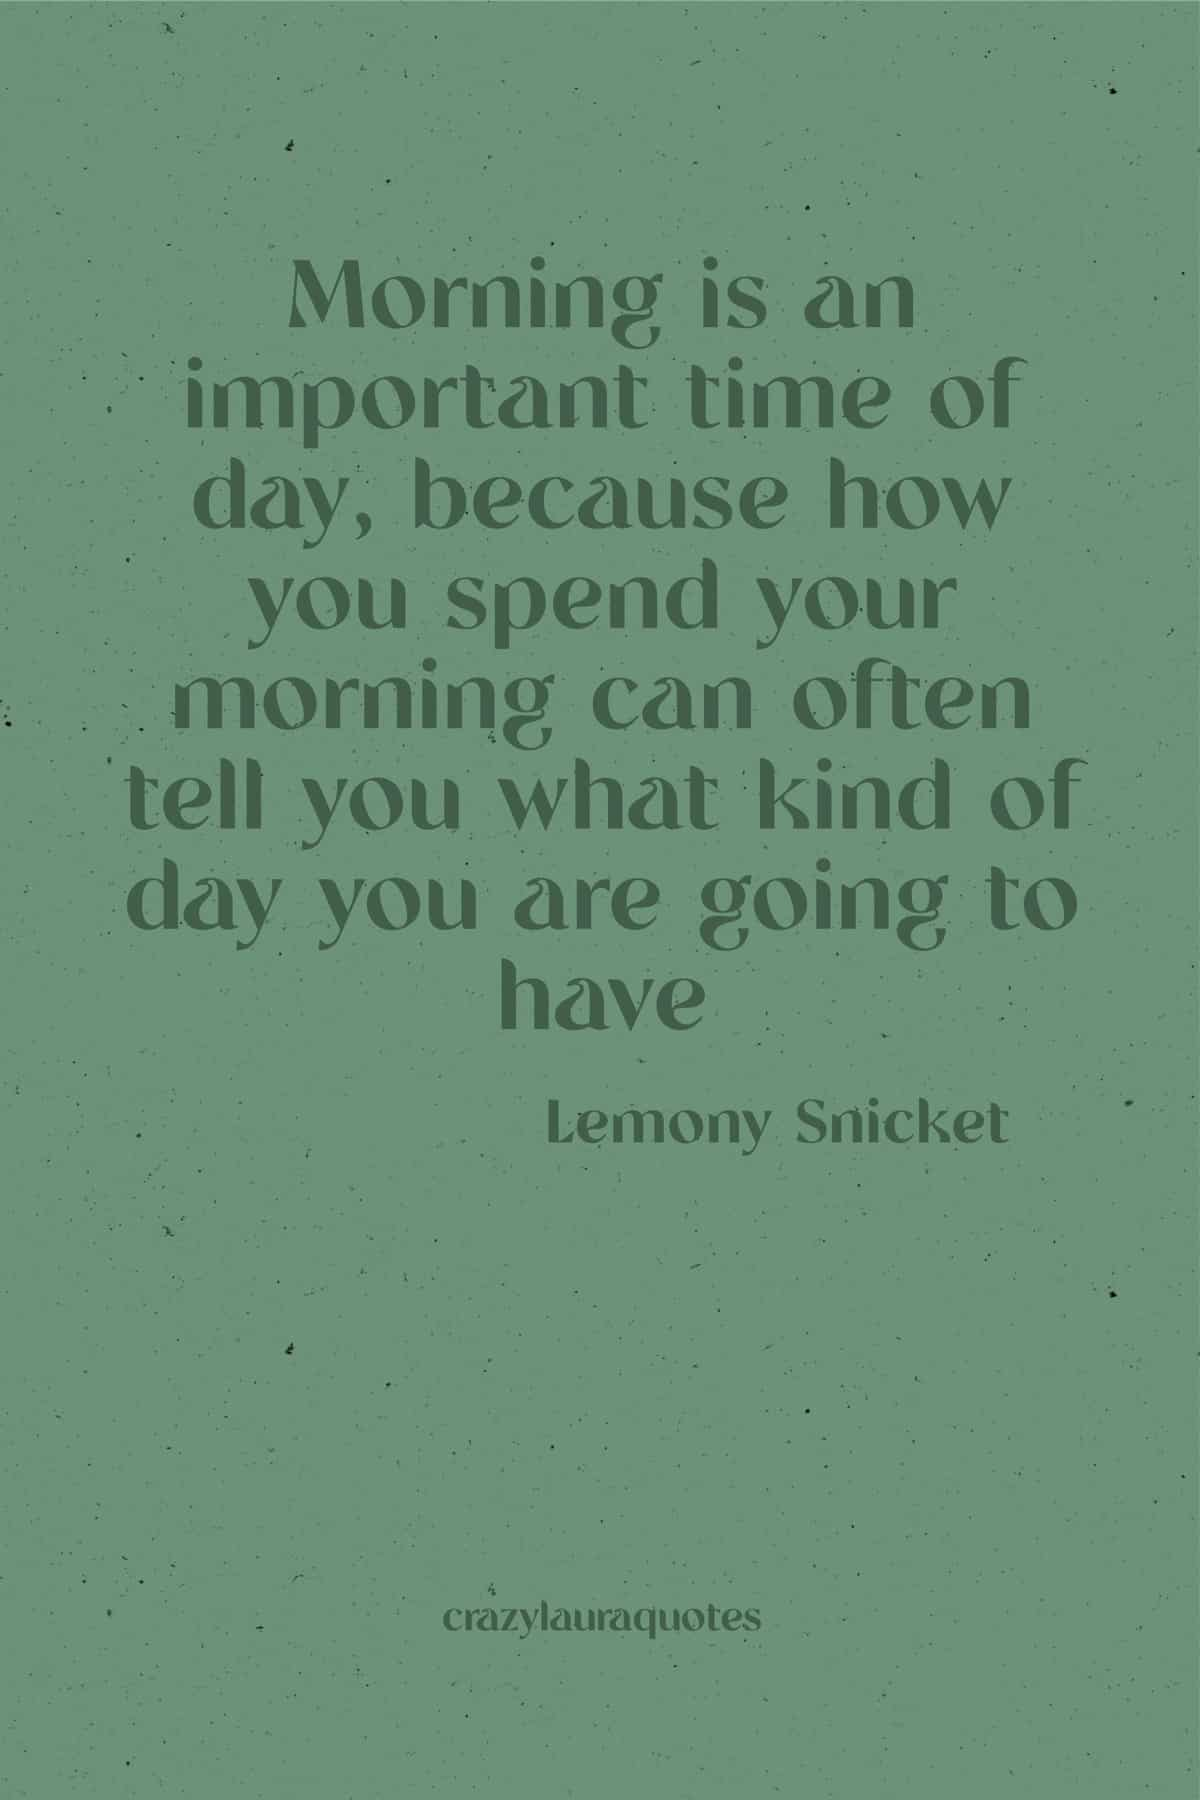 lemony snicket monday morning motivation